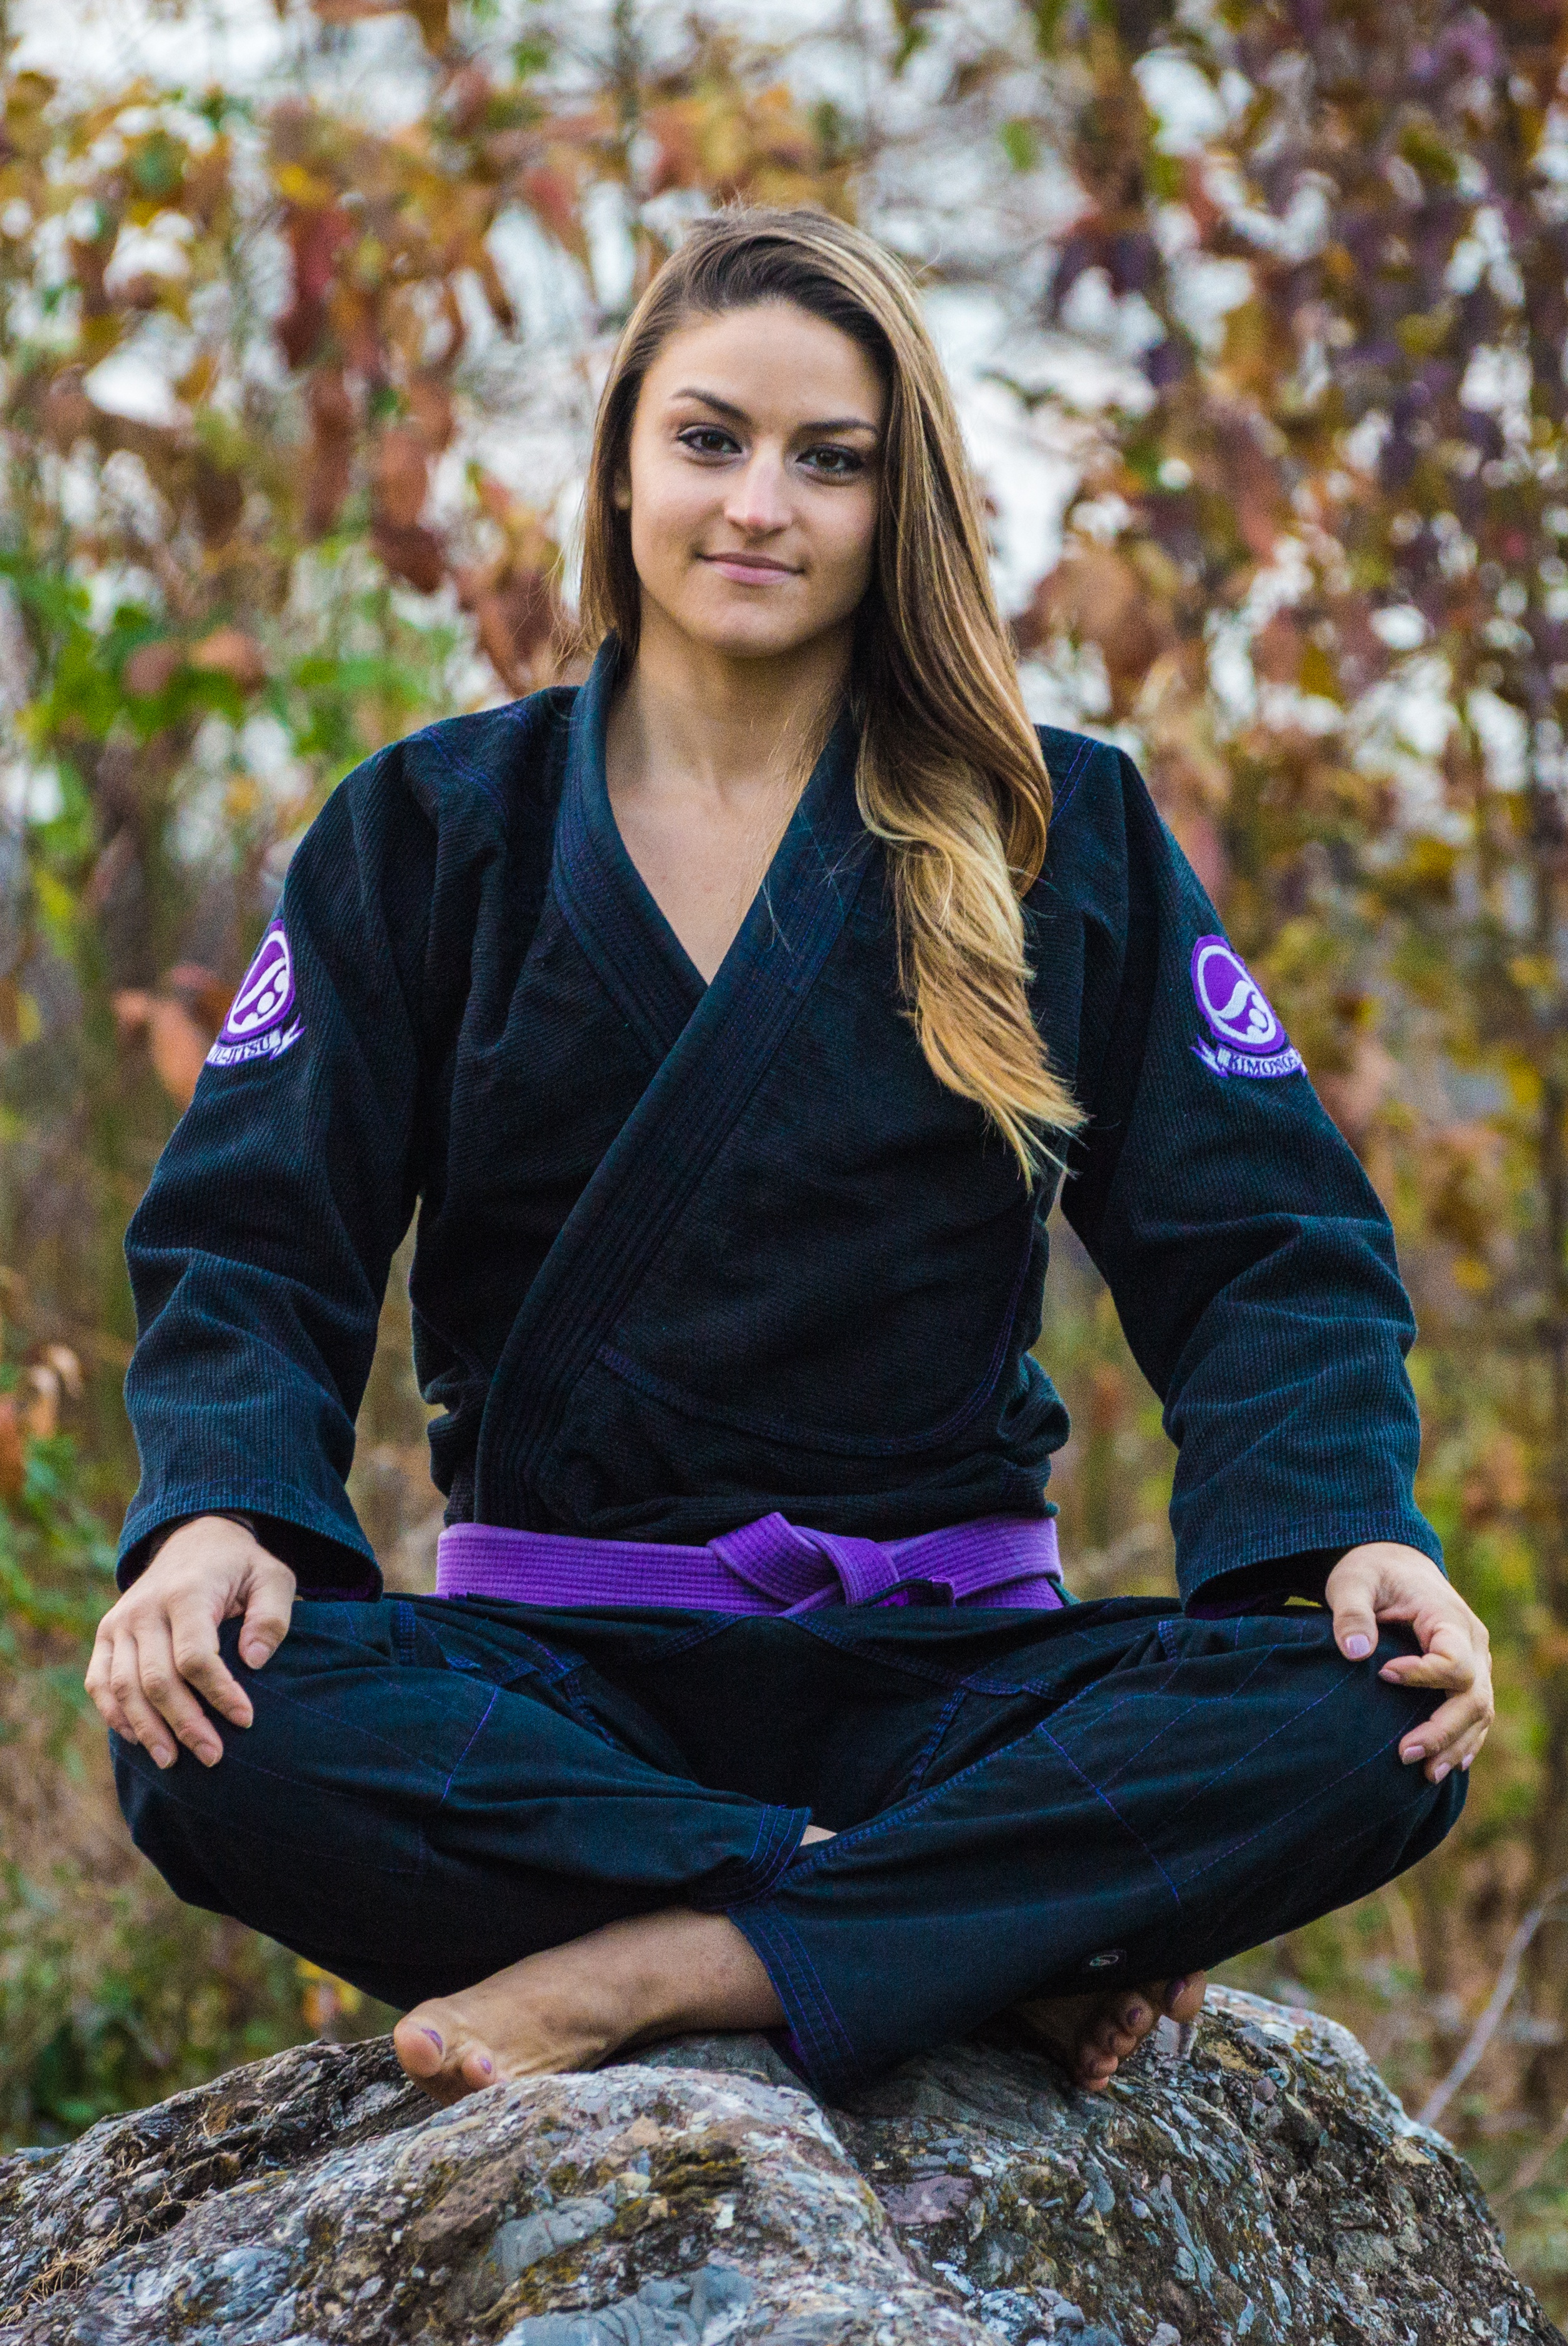 Gainesville bjj – Michelle Welti – Dominion BJJ